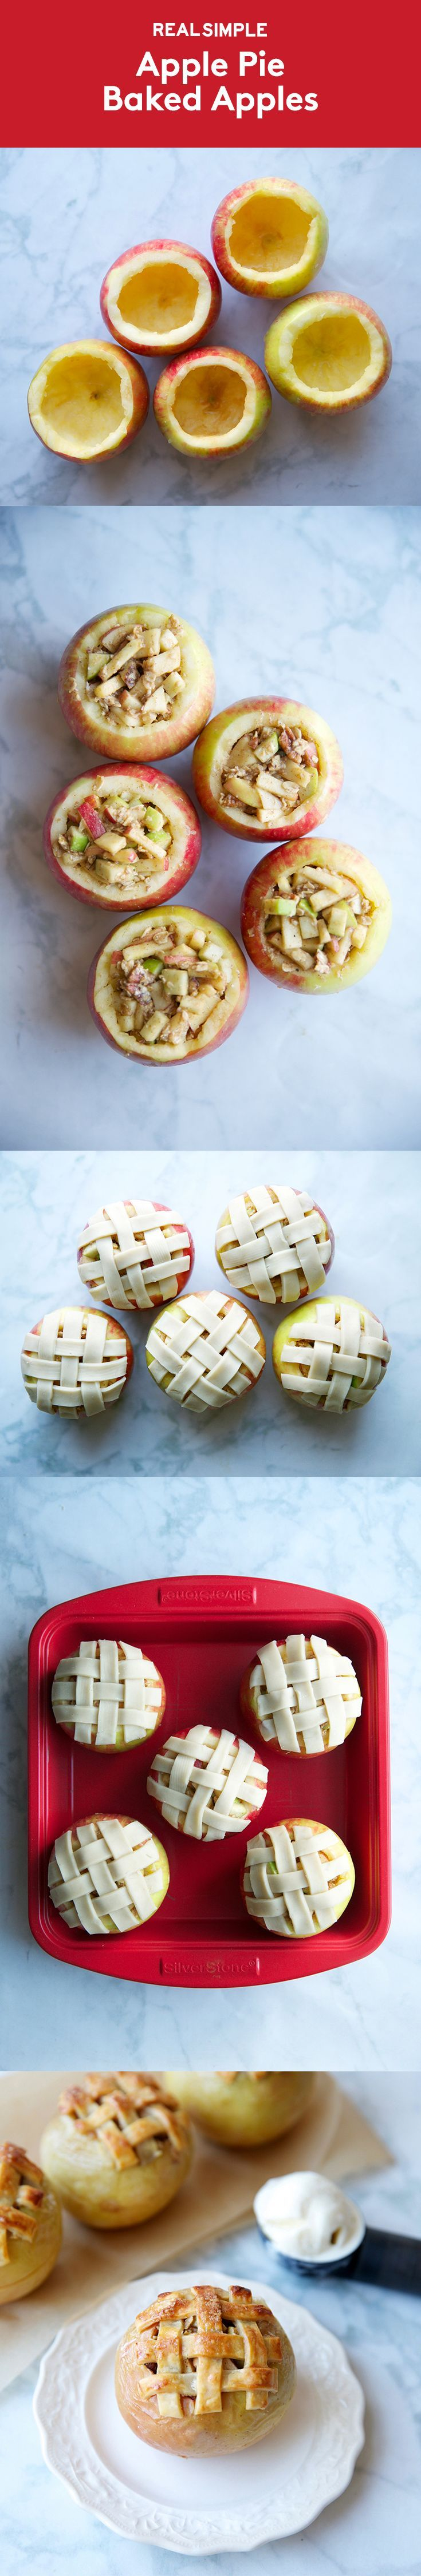 """Apple Pie Baked Apples   Despite the popular phrase """"easy as apple pie,"""" homemade pie can be quite an undertaking. And unless you're serving a crowd, you'll have a lot of leftovers—and isn't apple pie best when served fresh? Enter this adorable dessert, which offers all the flavors and aroma of a warm apple pie, pre-portioned into single-serve treats. Each apple is filled with homemade pie filling and topped with a swirl of pecan-oat crumble."""